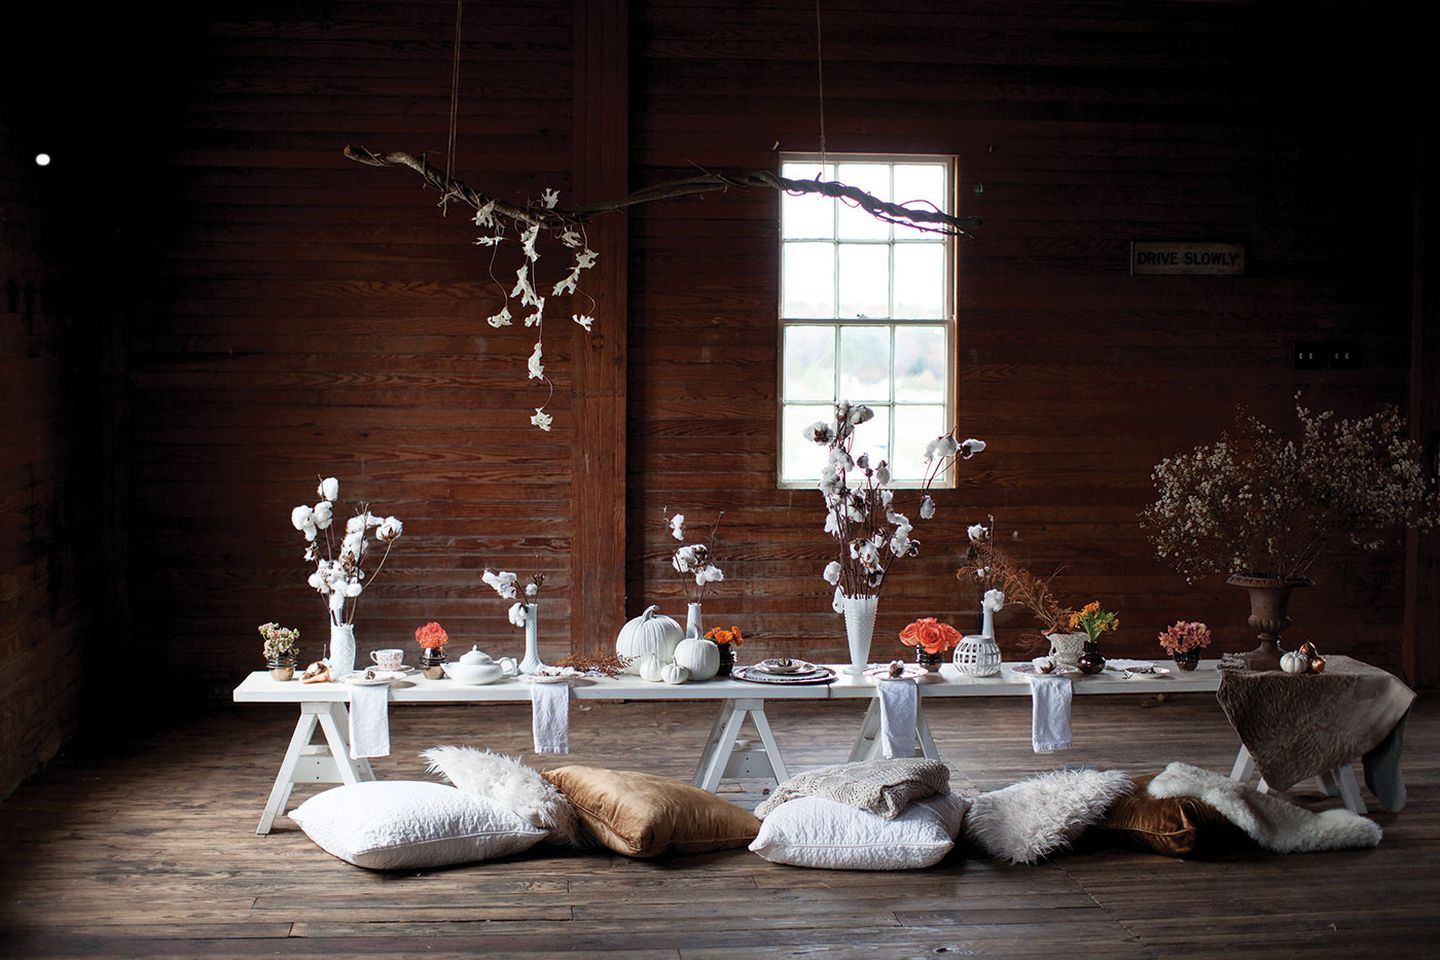 The table is set for a wedding at the Wells Reserve at Laudholm.